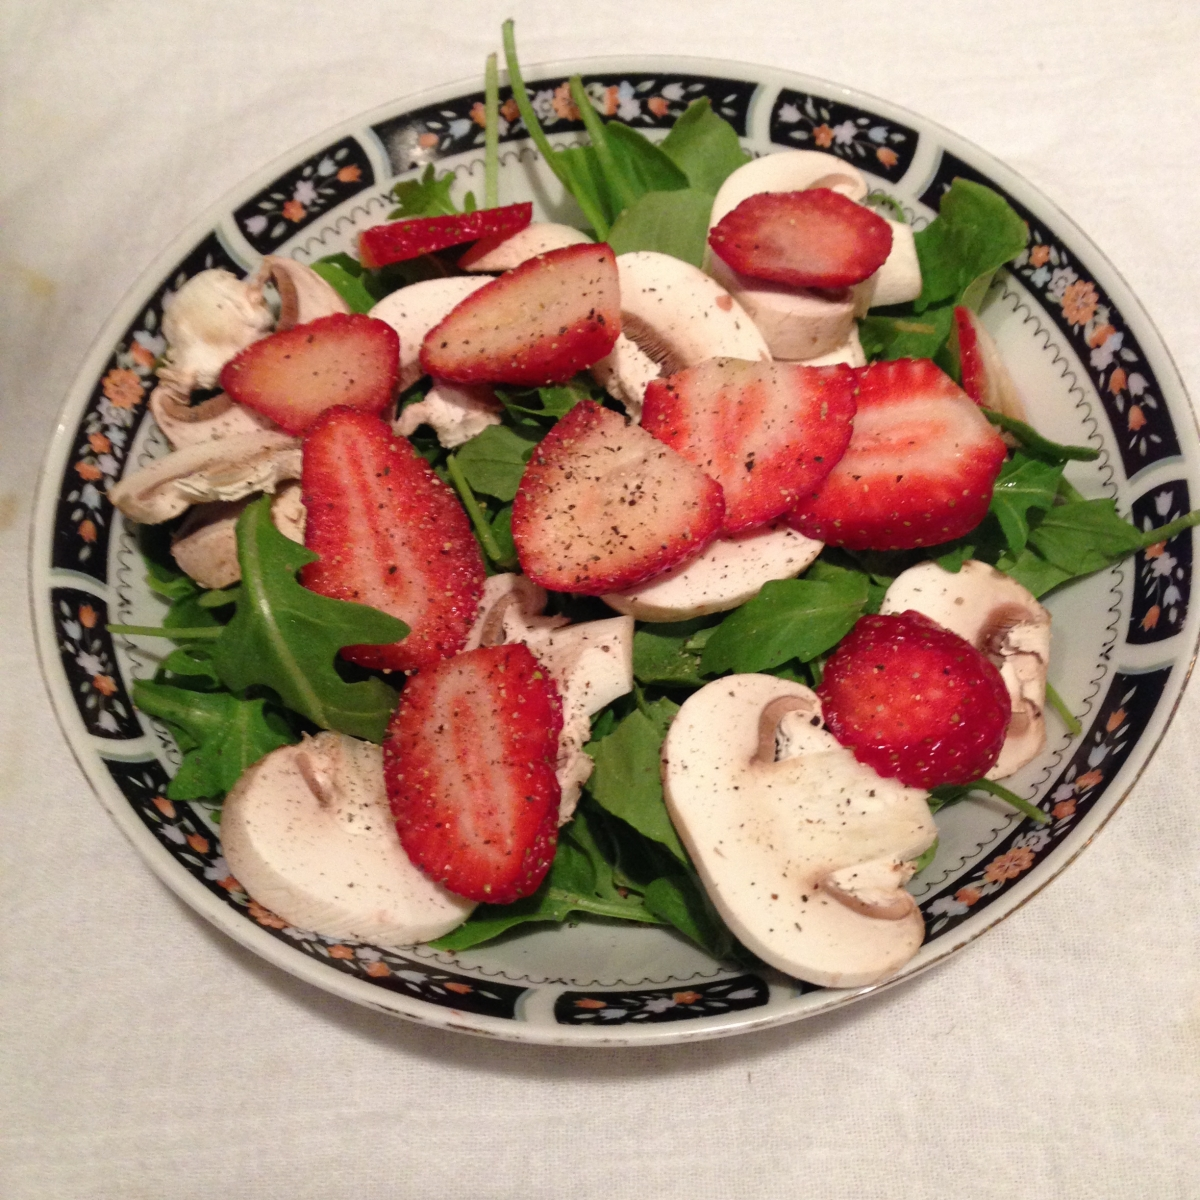 Spinach salad with fresh mushrooms & strawberries